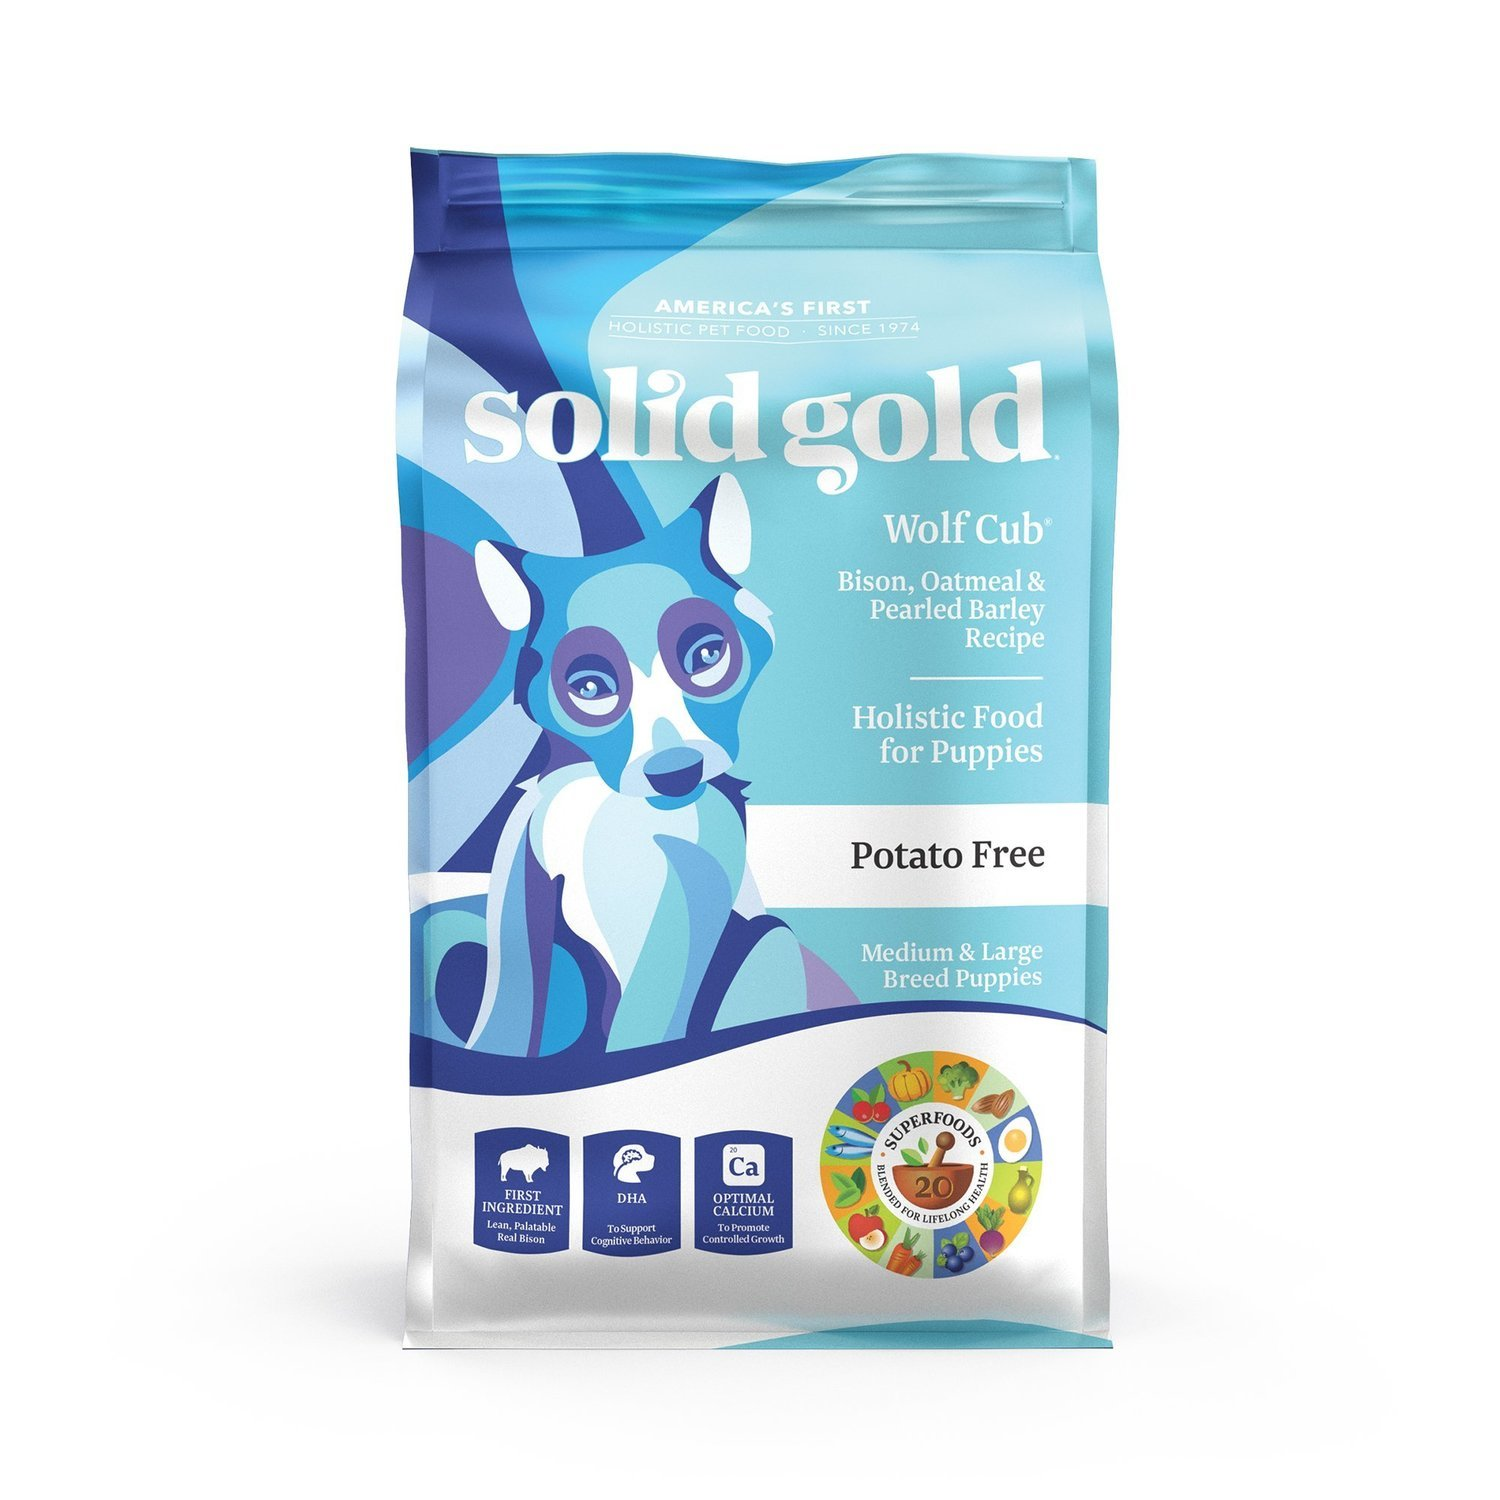 Solid Gold Wolf Cub Bison & Oatmeal Puppy Food, 24 lbs. (3/19) (A.I3)